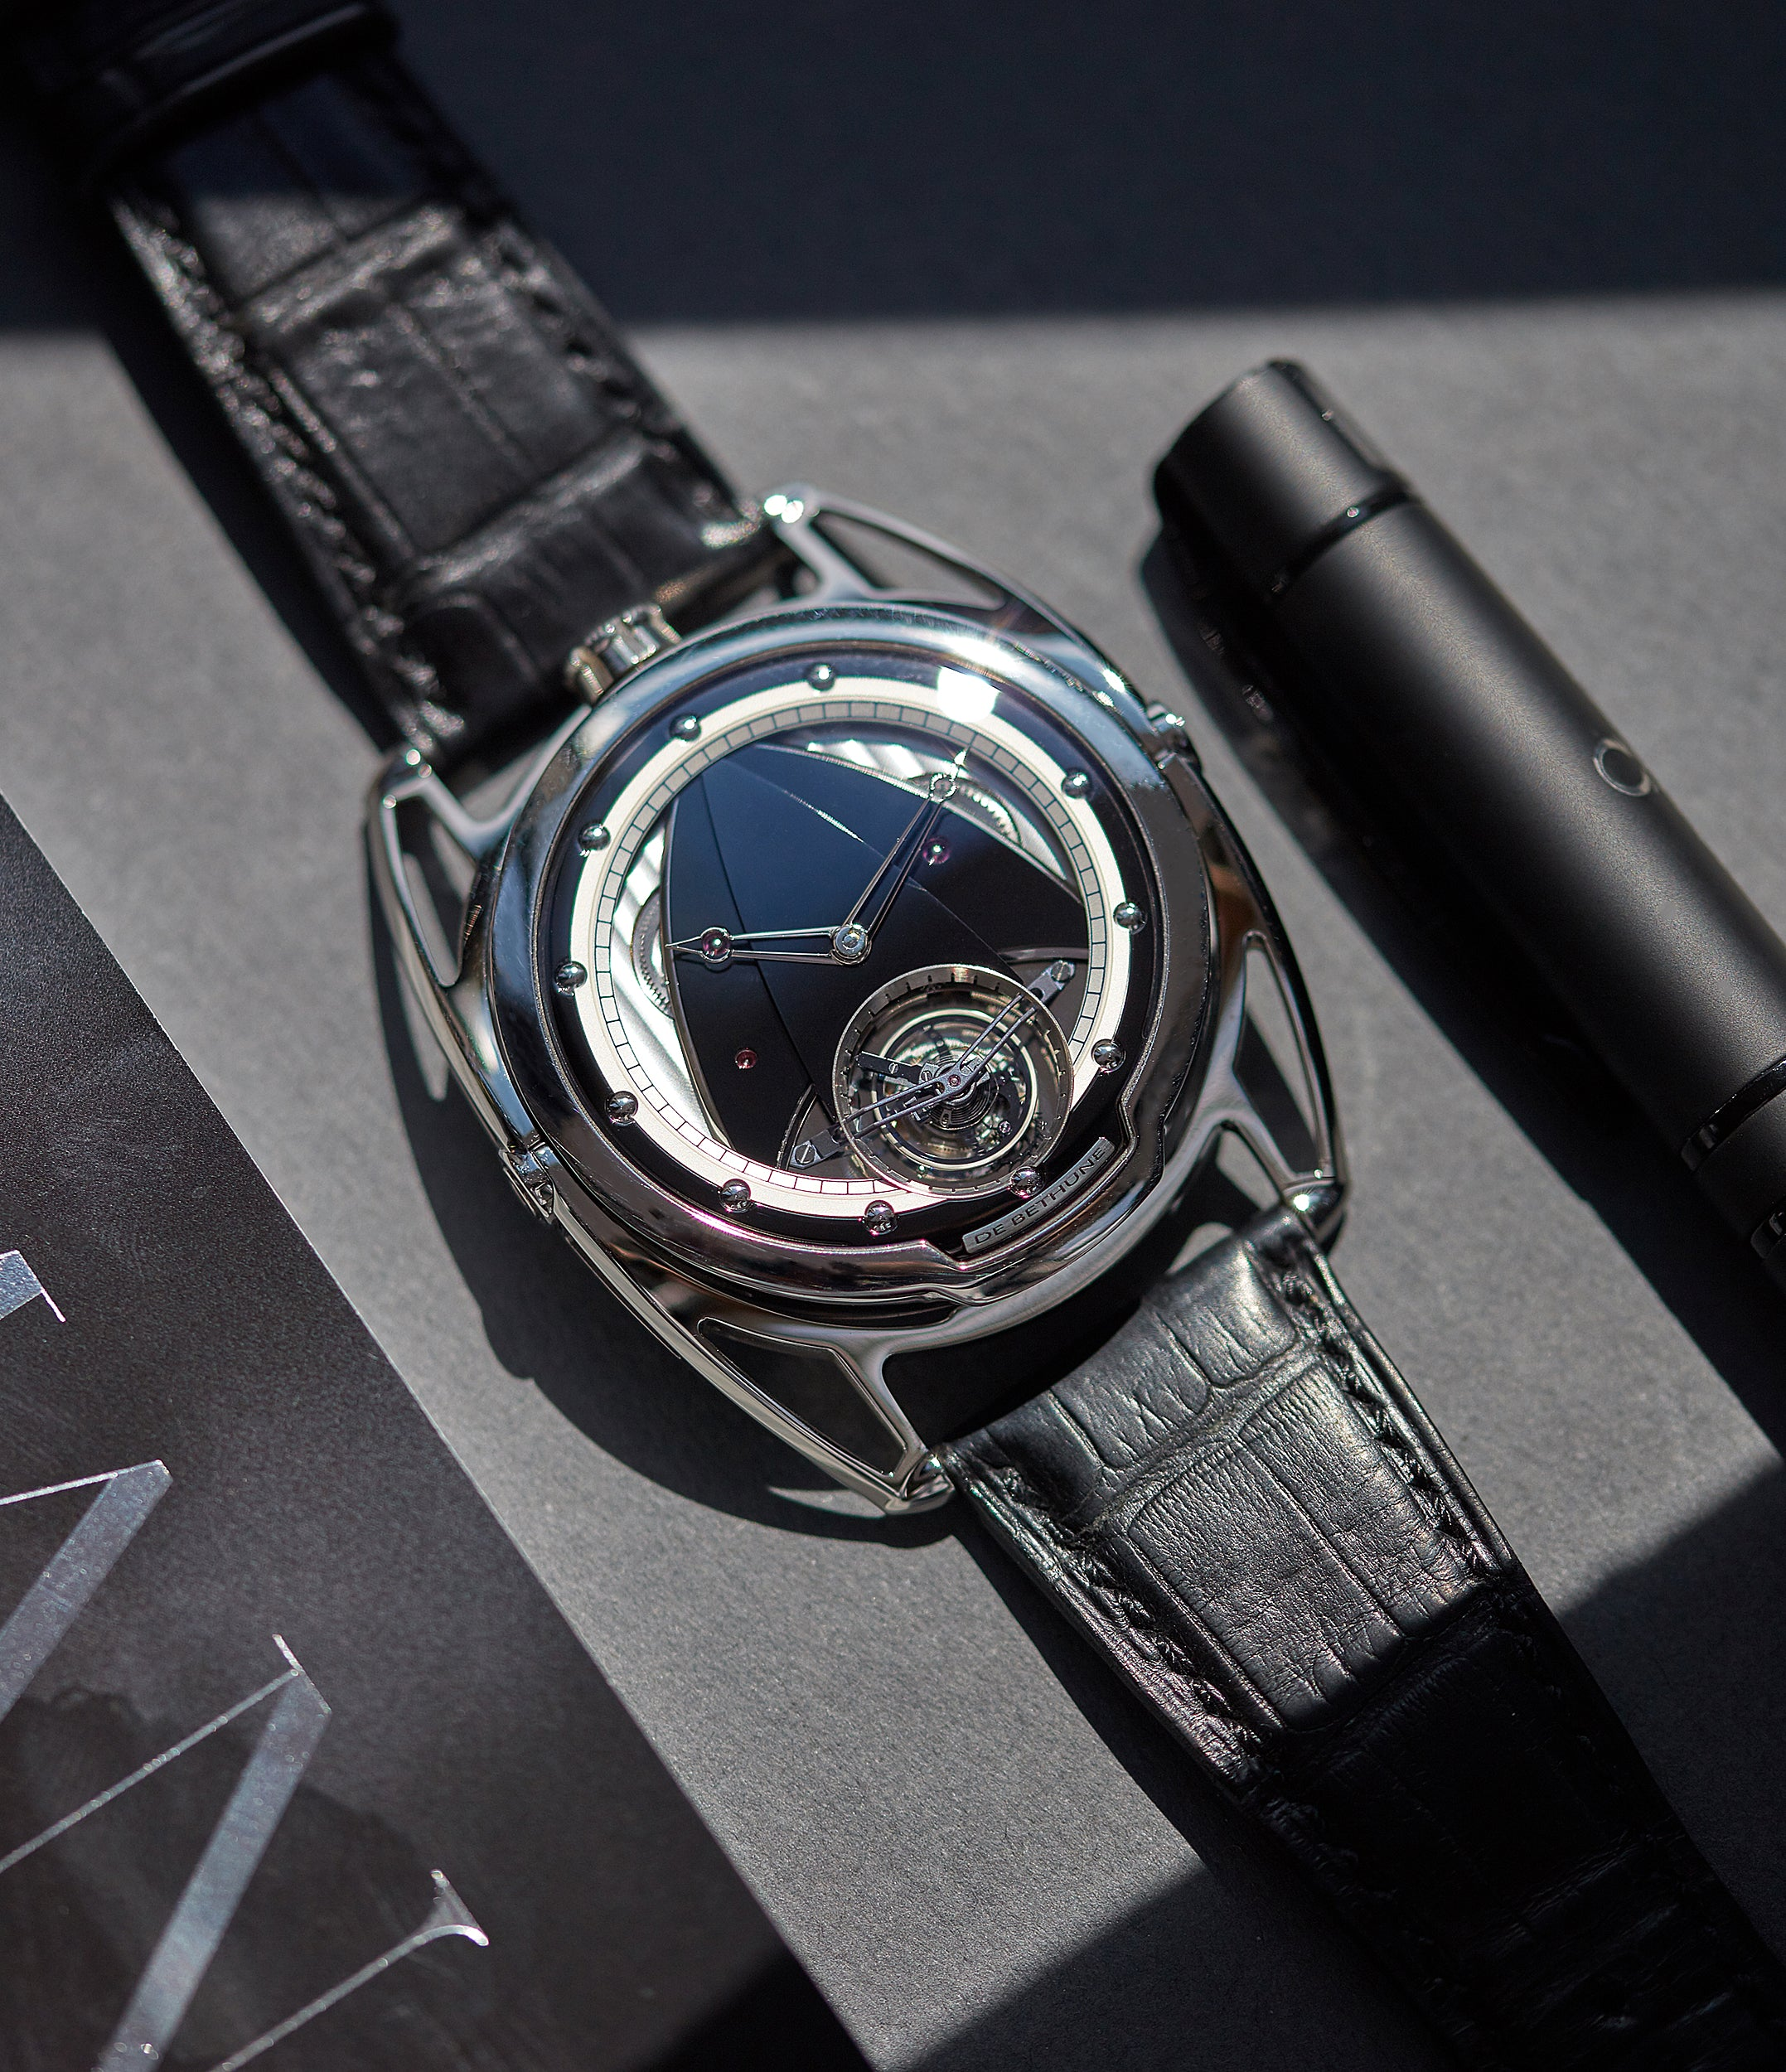 rare De Bethune DB28T tourbillon titanium time-only watch from independent watchmaker for sale online at A Collected Man London UK specialist of rare watches